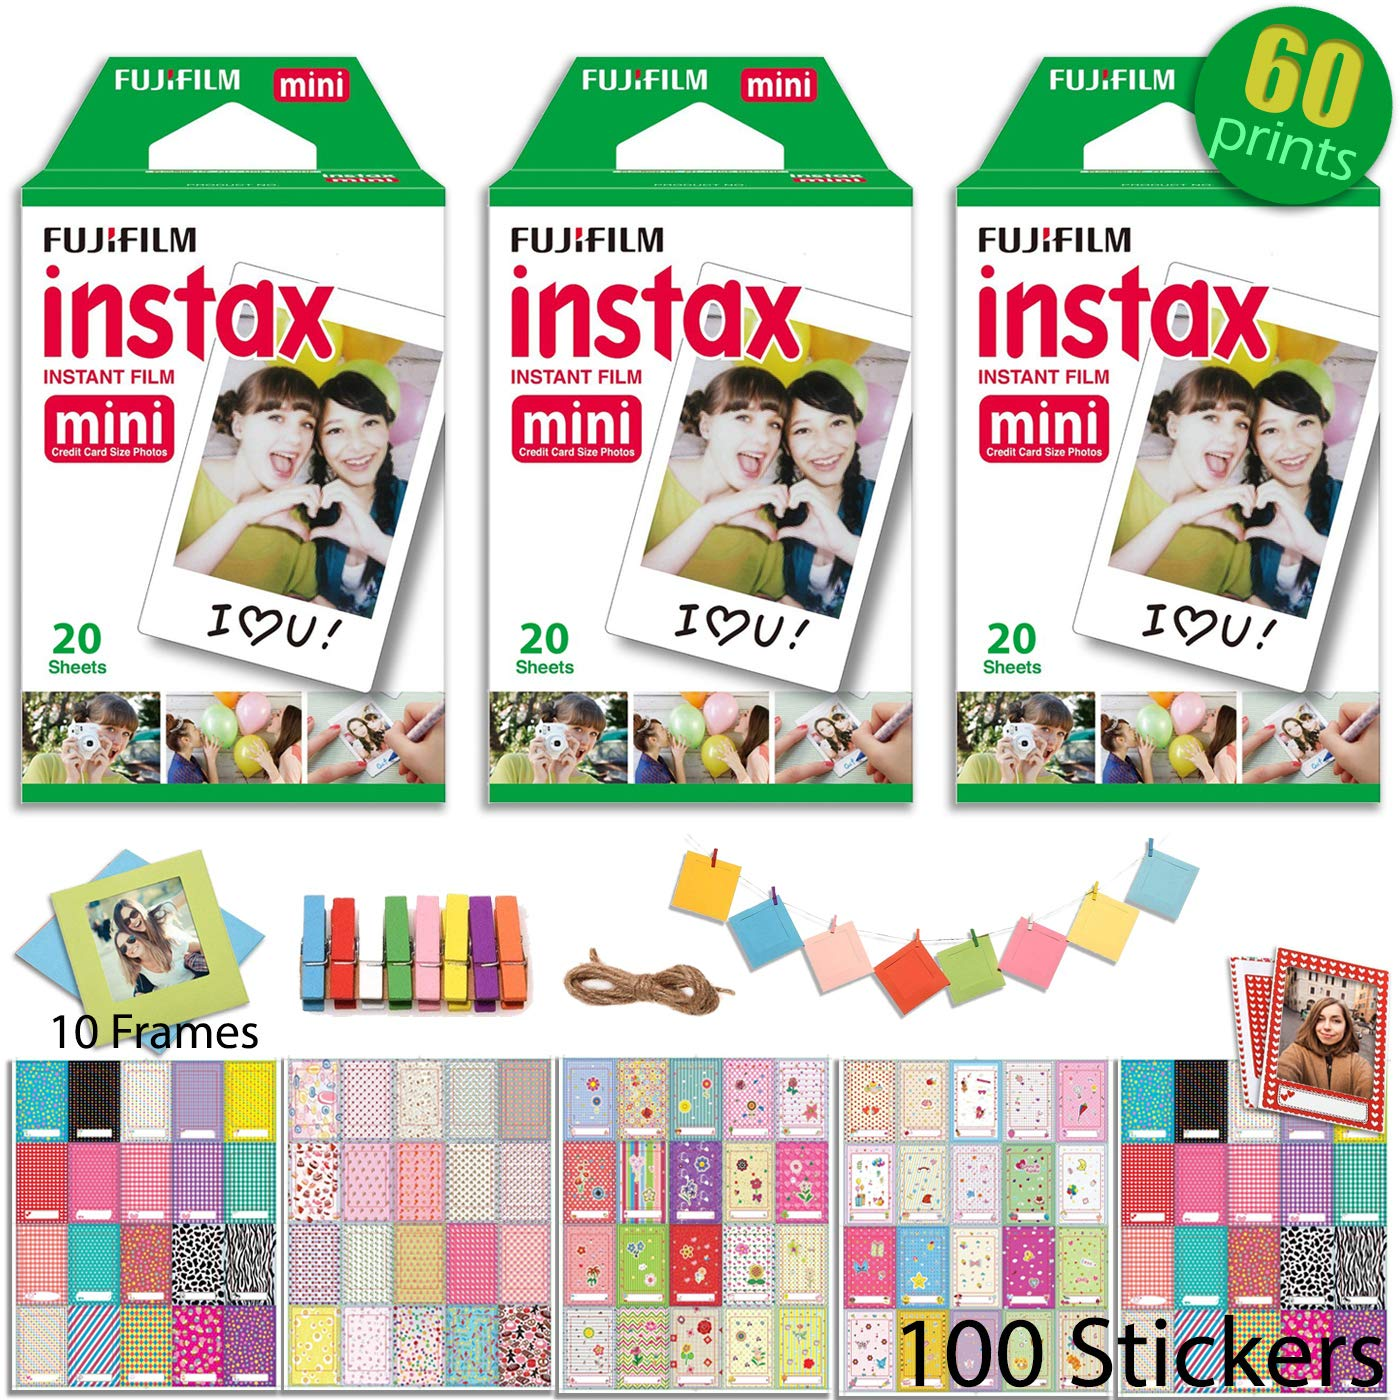 Fujifilm INSTAX Mini Instant Film 3 x Twin Pack (White) 60 Prints with 100 Frame Stickers and 10 Hanging Frames by Fujifilm (Image #1)